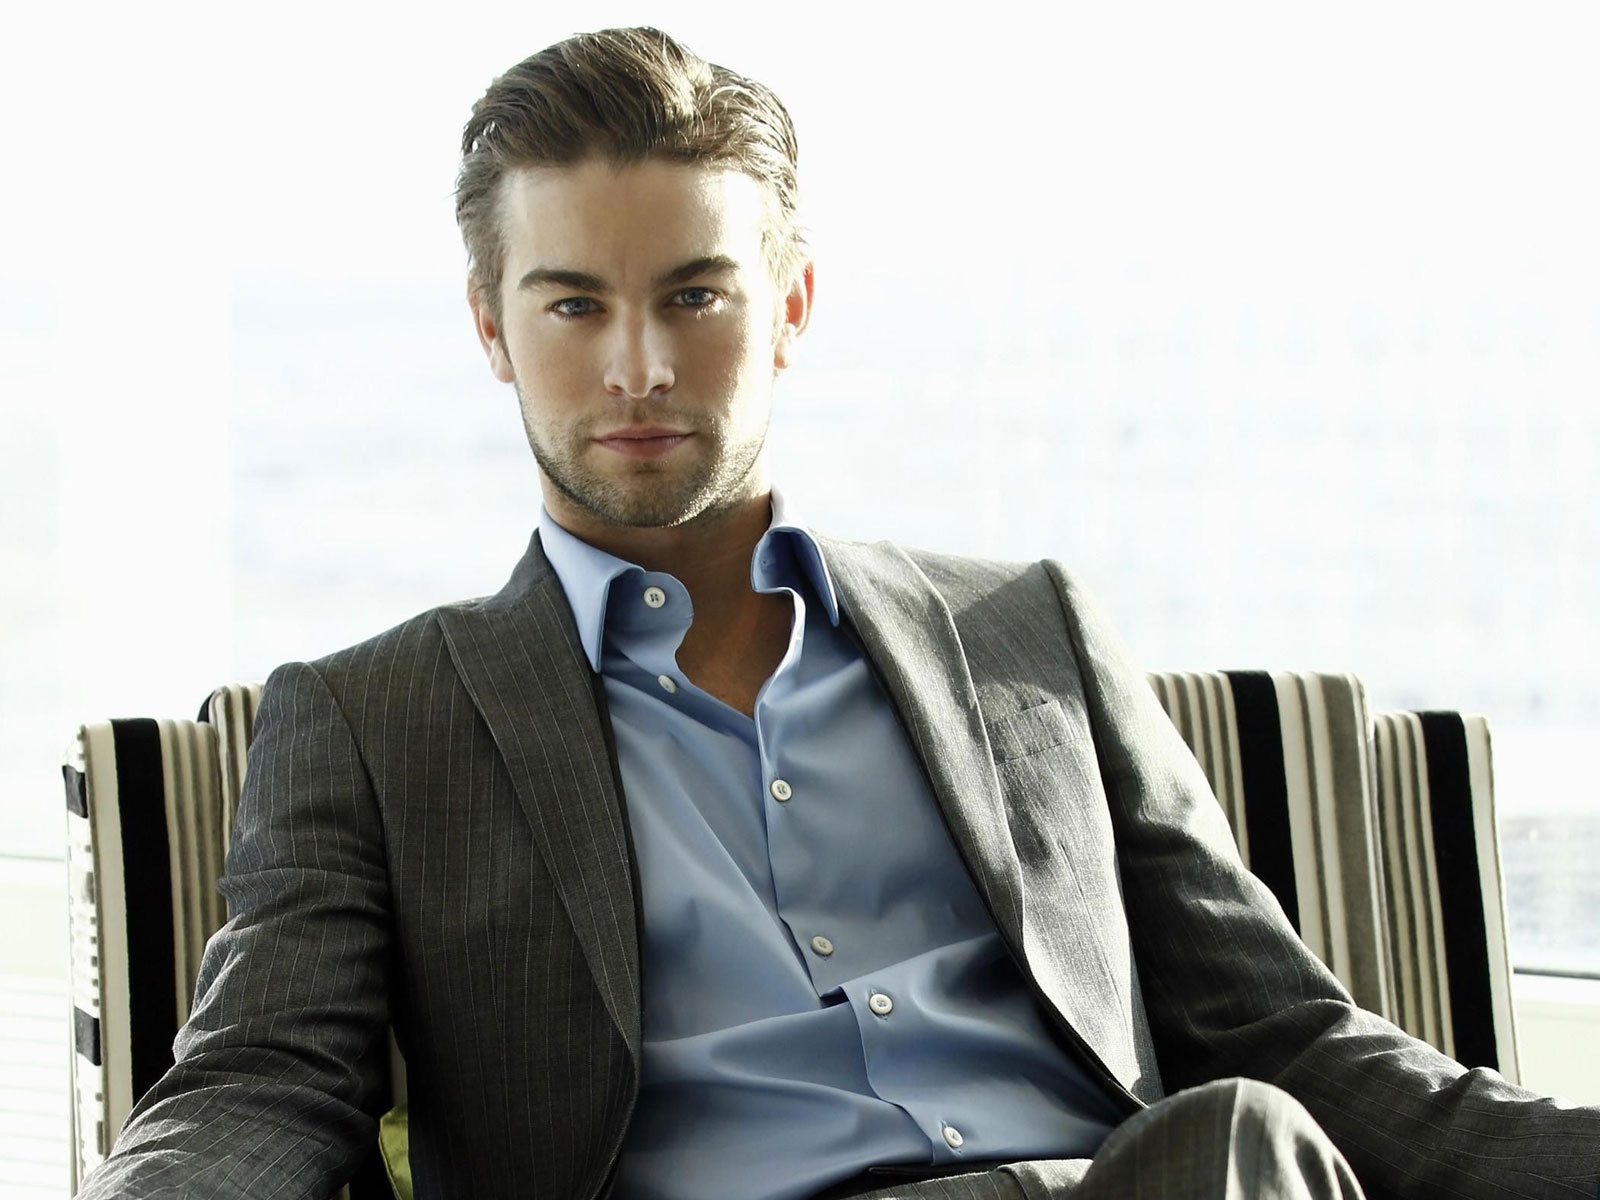 chace crawford 2014 wallpaper high definition high